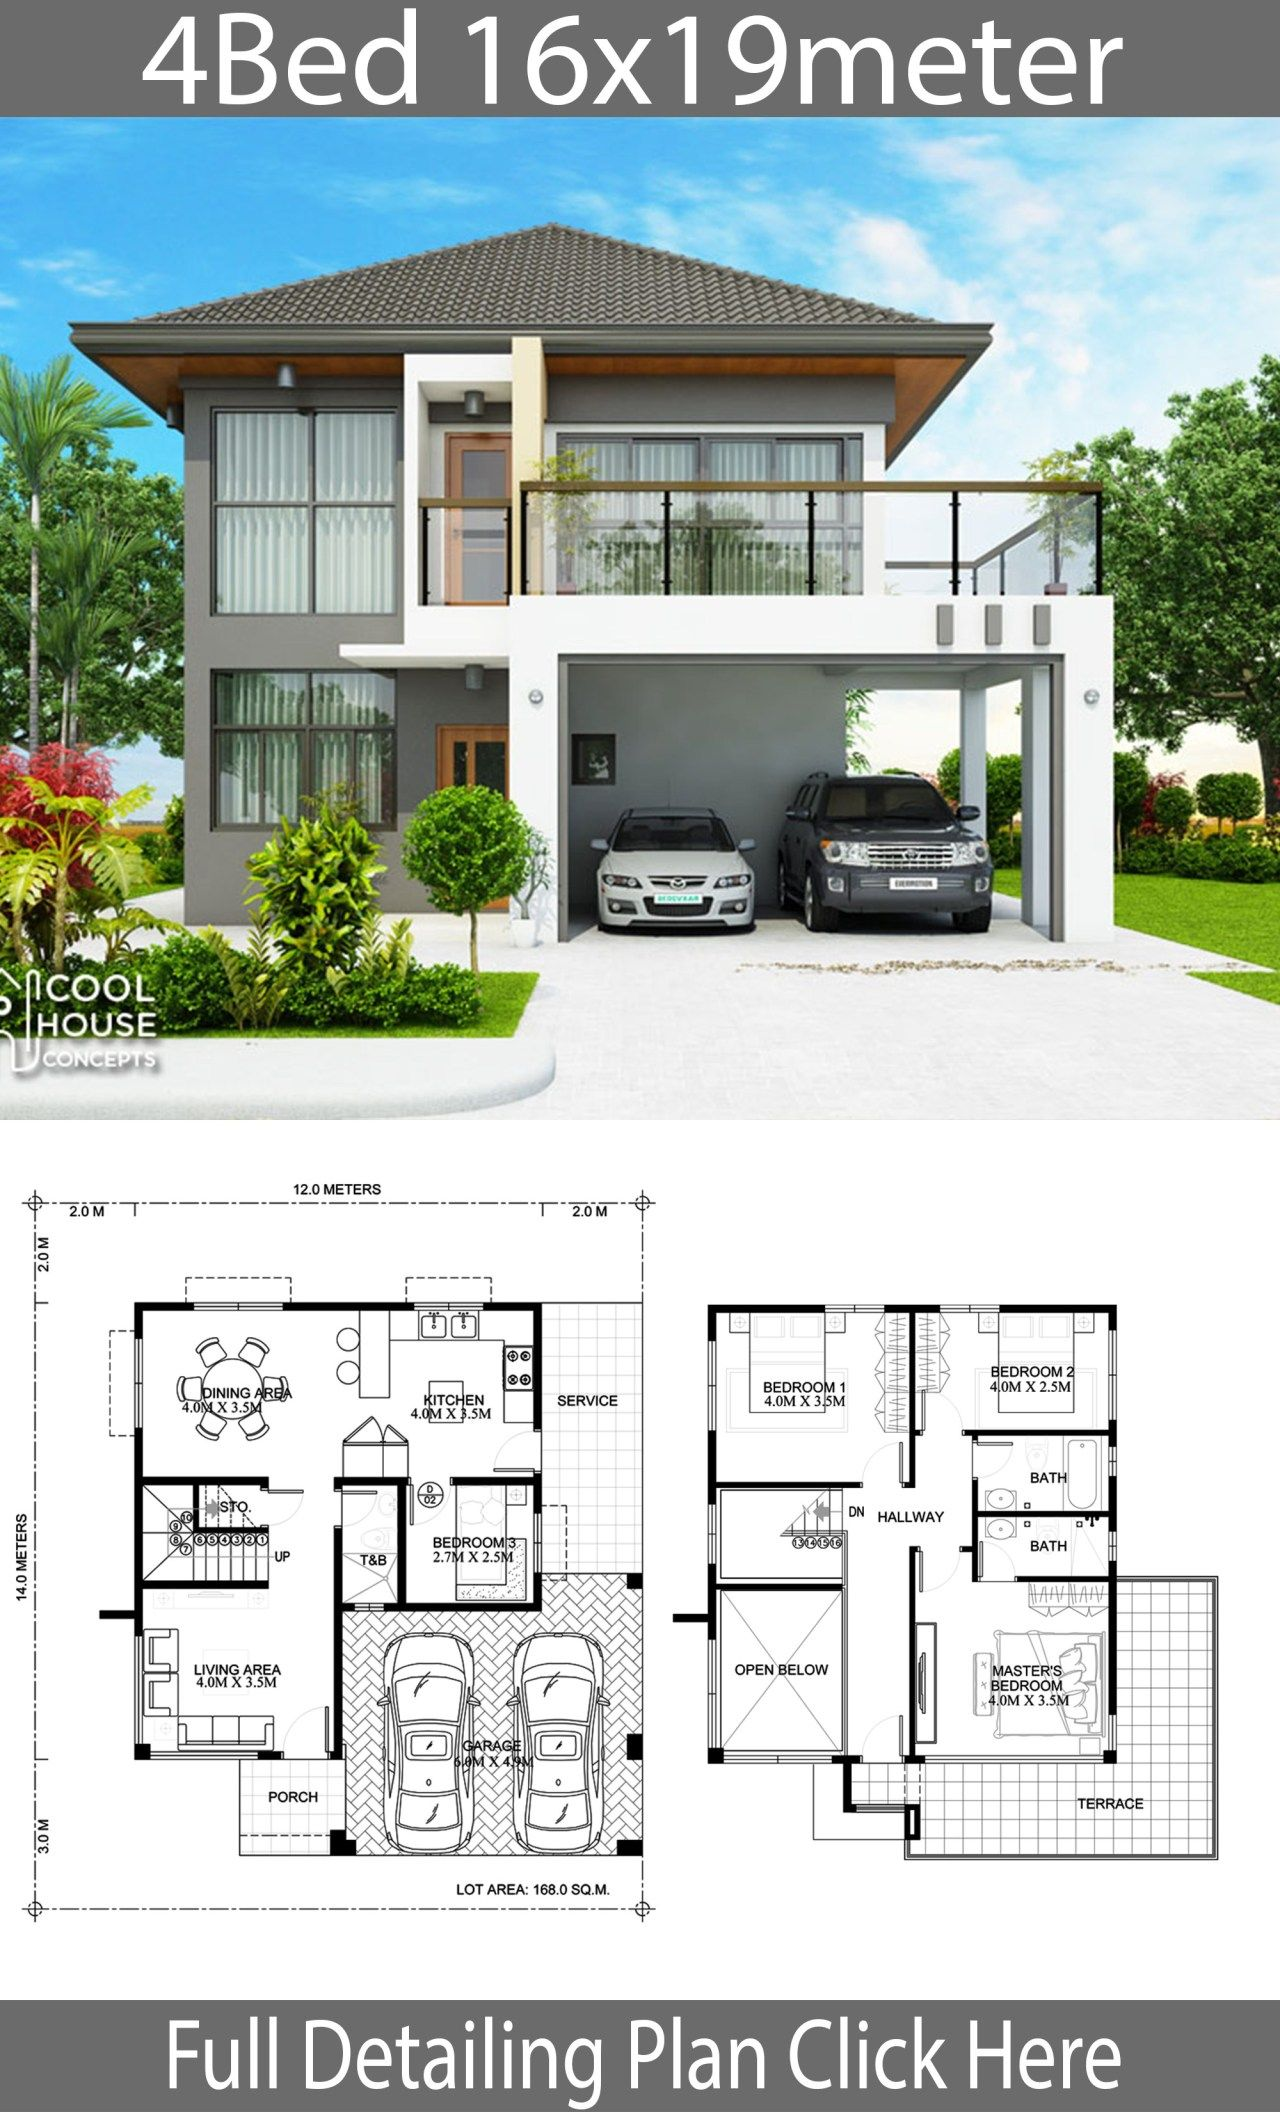 Home design plan 16x19m with 4 Bedrooms | Philippines ...